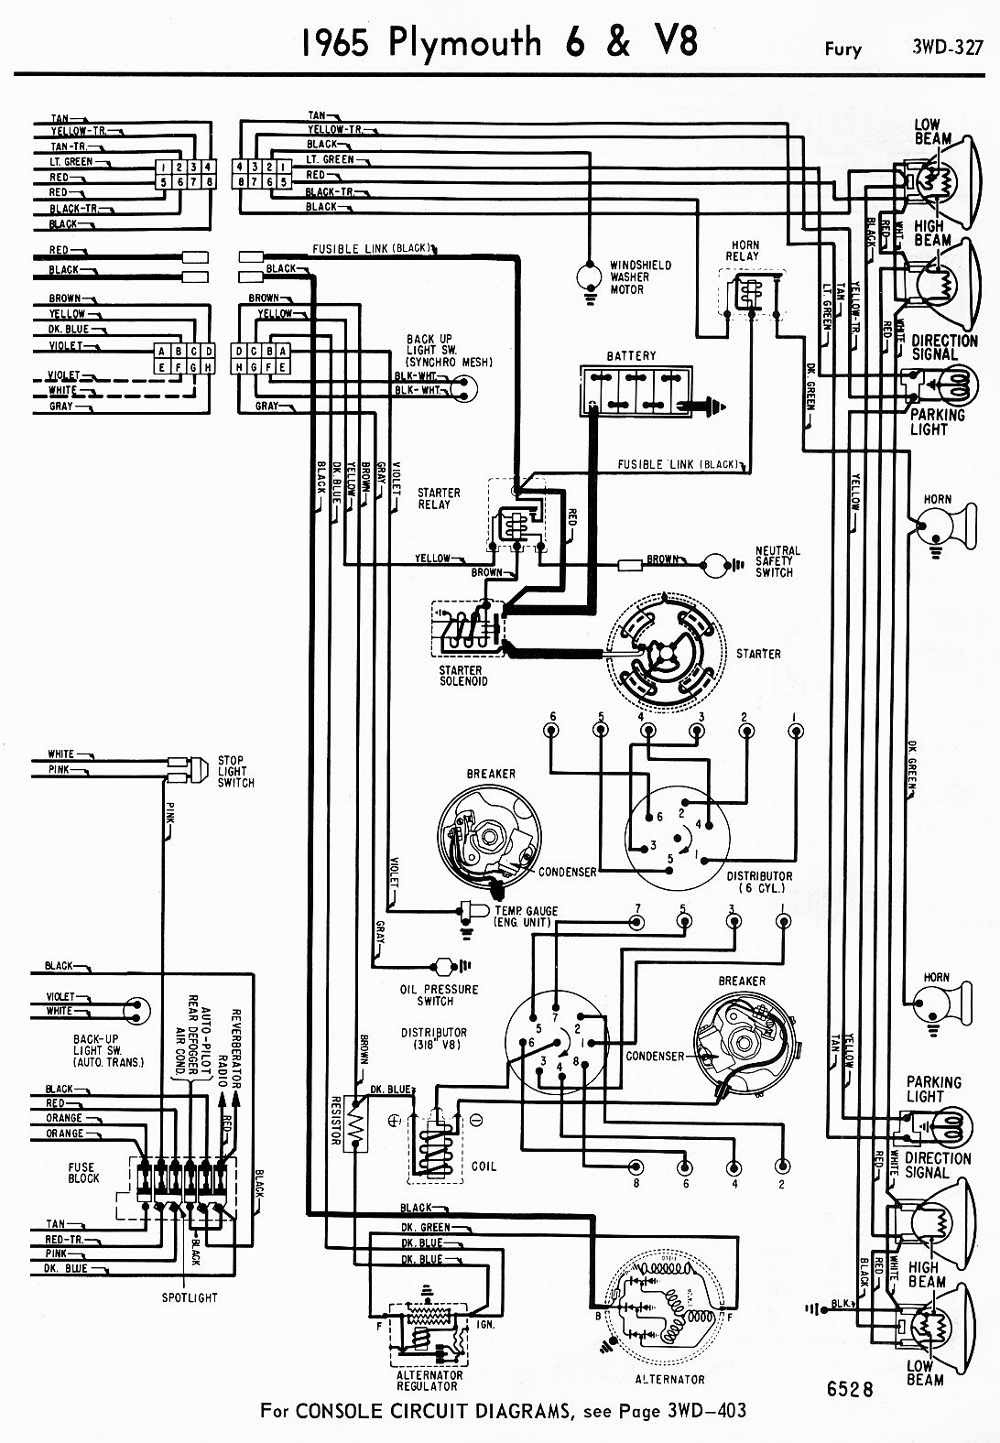 95 Plymouth Voyager Fuse Box Diagram